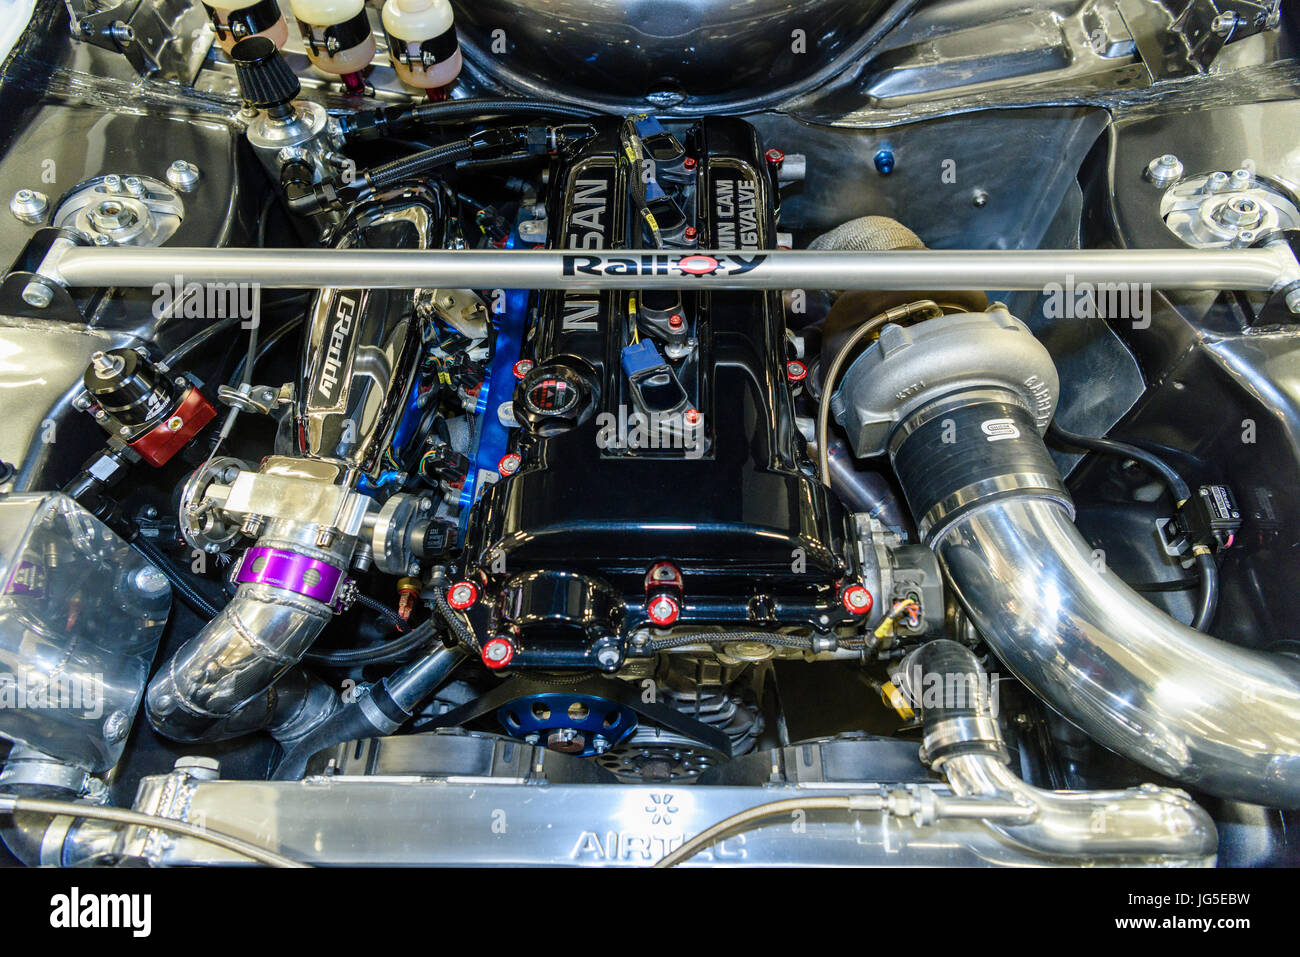 Twin Cam Engine Stock Photos S Alamy. Nissan Twin Cam 16 Valve Engine Very Clean With Supercharger And Rollbar In A. Nissan. Nissan Twin Cam 16 Valve Engine Diagram At Scoala.co